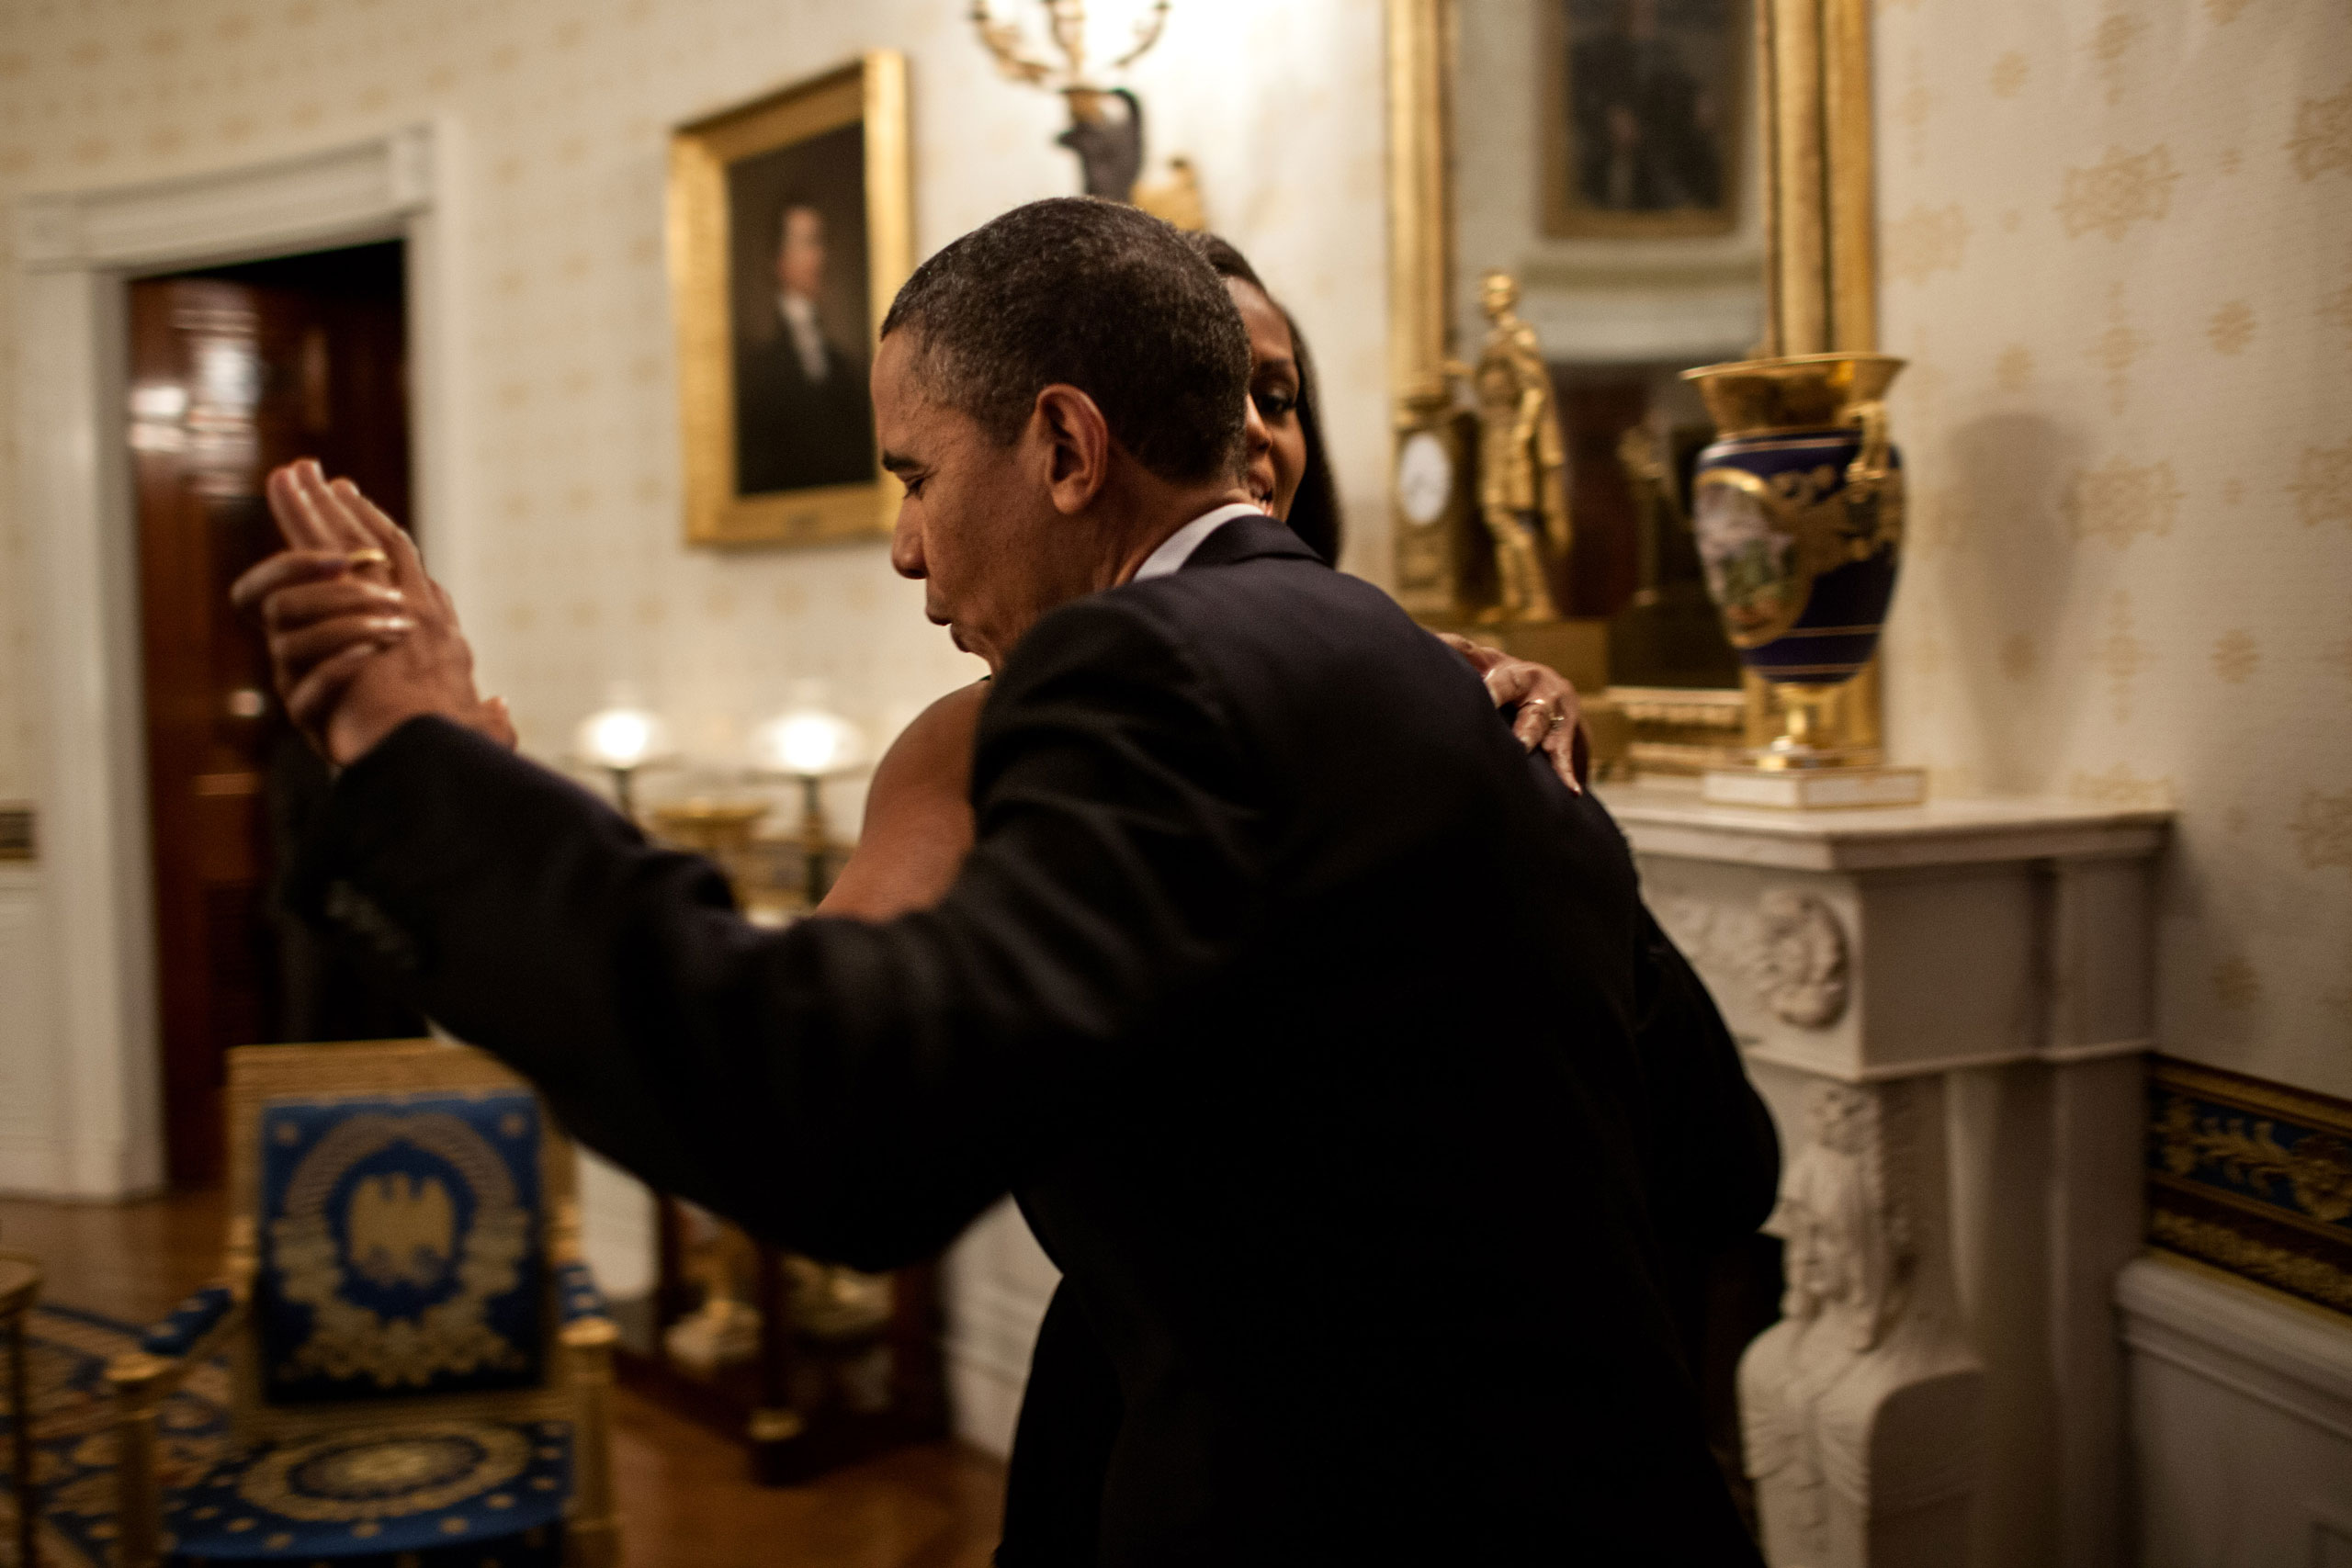 President Barack Obama dances with First Lady Michelle Obama in the Blue Room of the White House prior to an  In Performance at the White House  series concert honoring songwriters Burt Bacharach and Hal David, May 9, 2012. During the concert the President presented Bacharach and Eunice David, on behalf of her husband, with the Library of Congress Gershwin Prize for Popular Song.